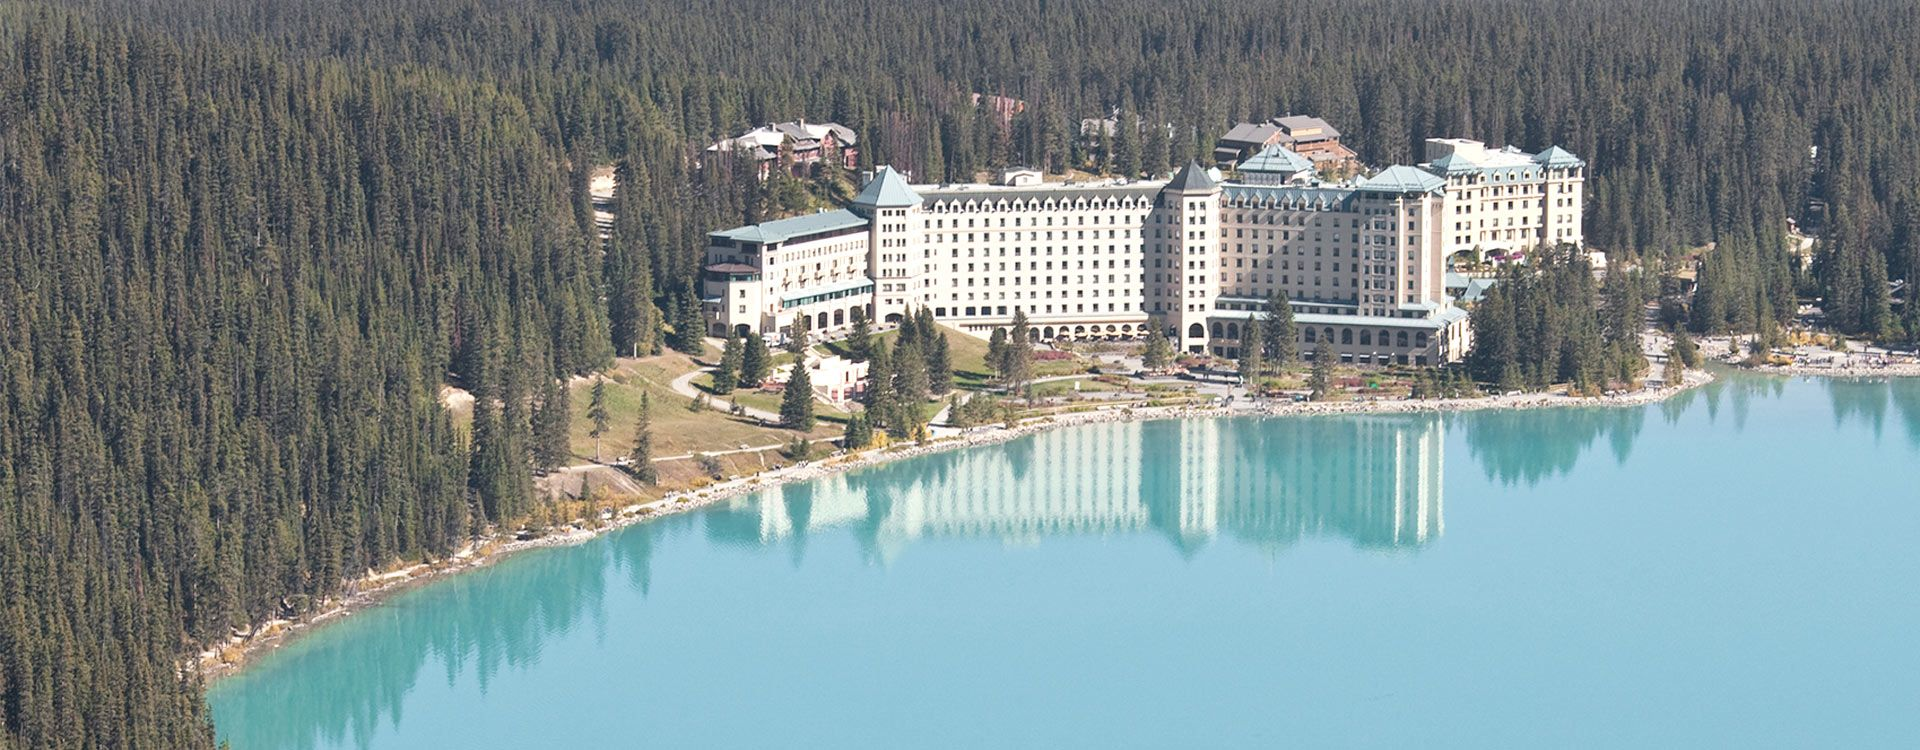 bnr-Fairmont-Chateau-Lake-Louise_Hospitality